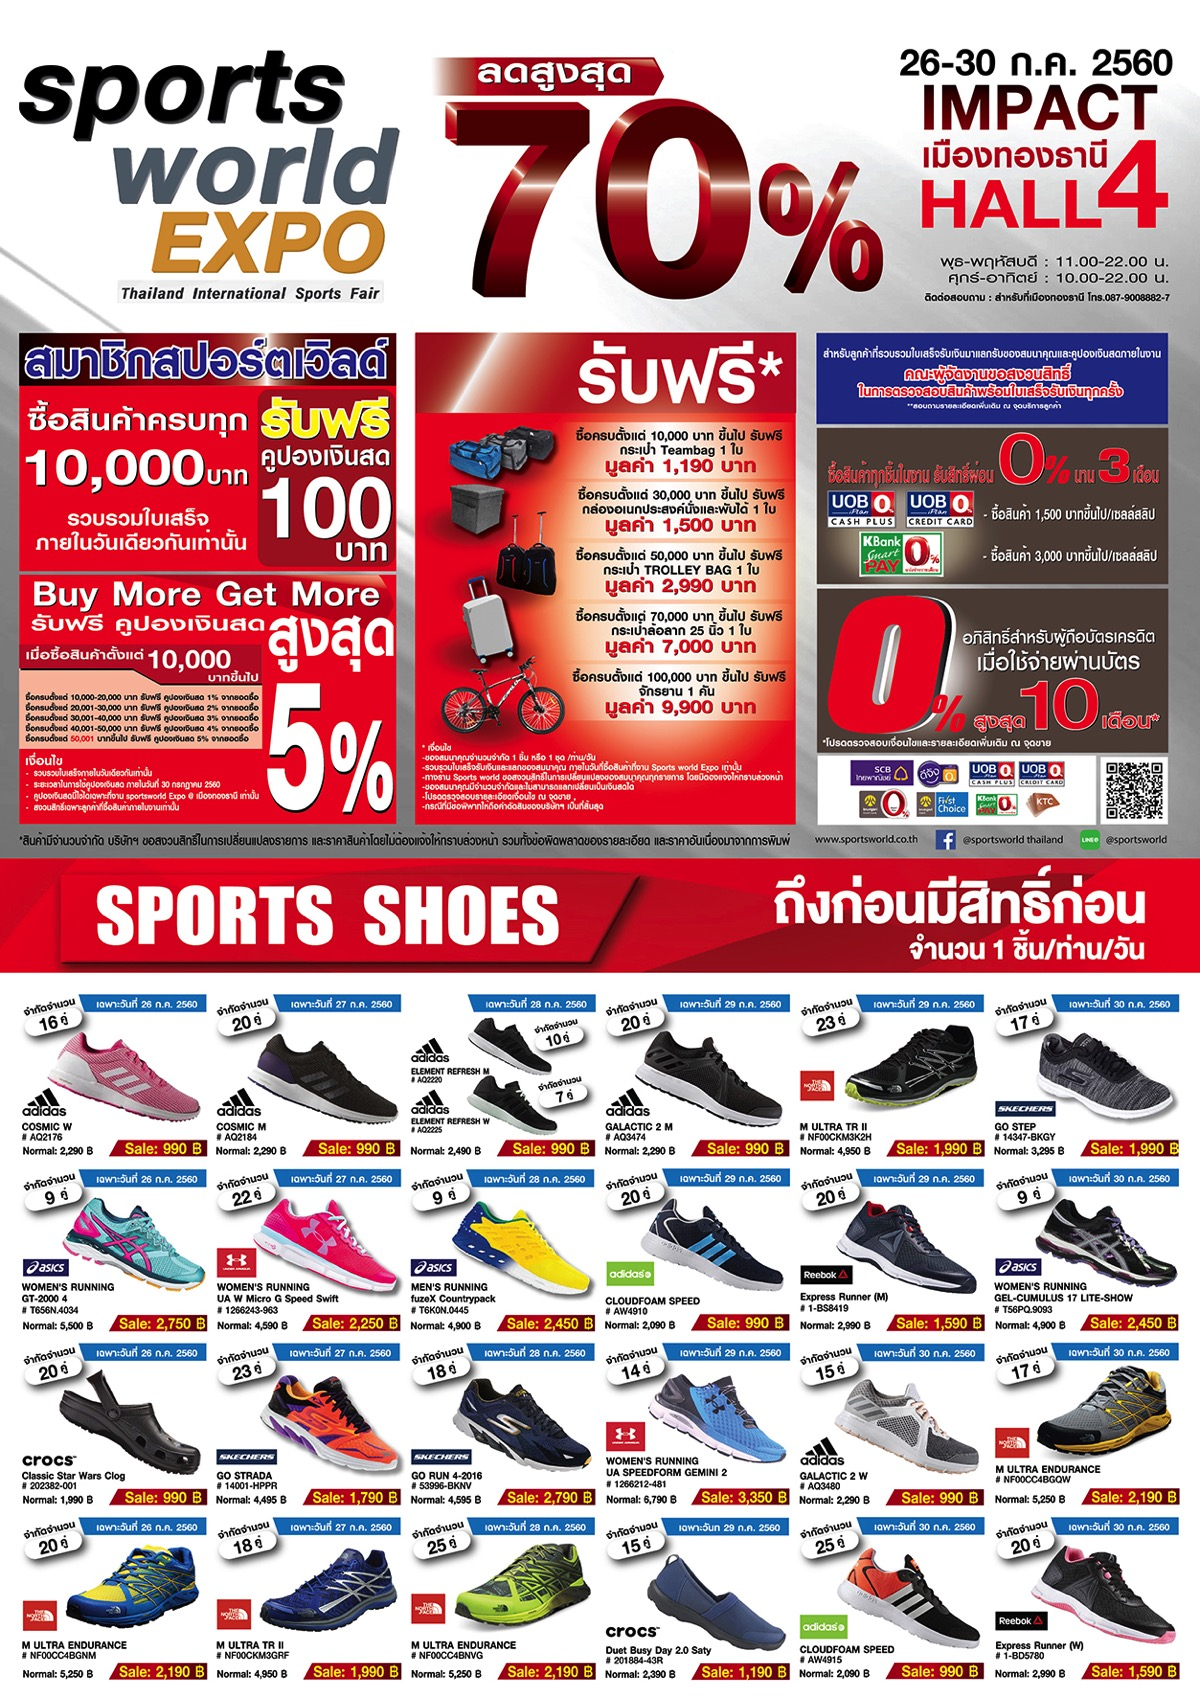 Promotion sports world expo 2017 sale up to 70 off jul 2017 P01